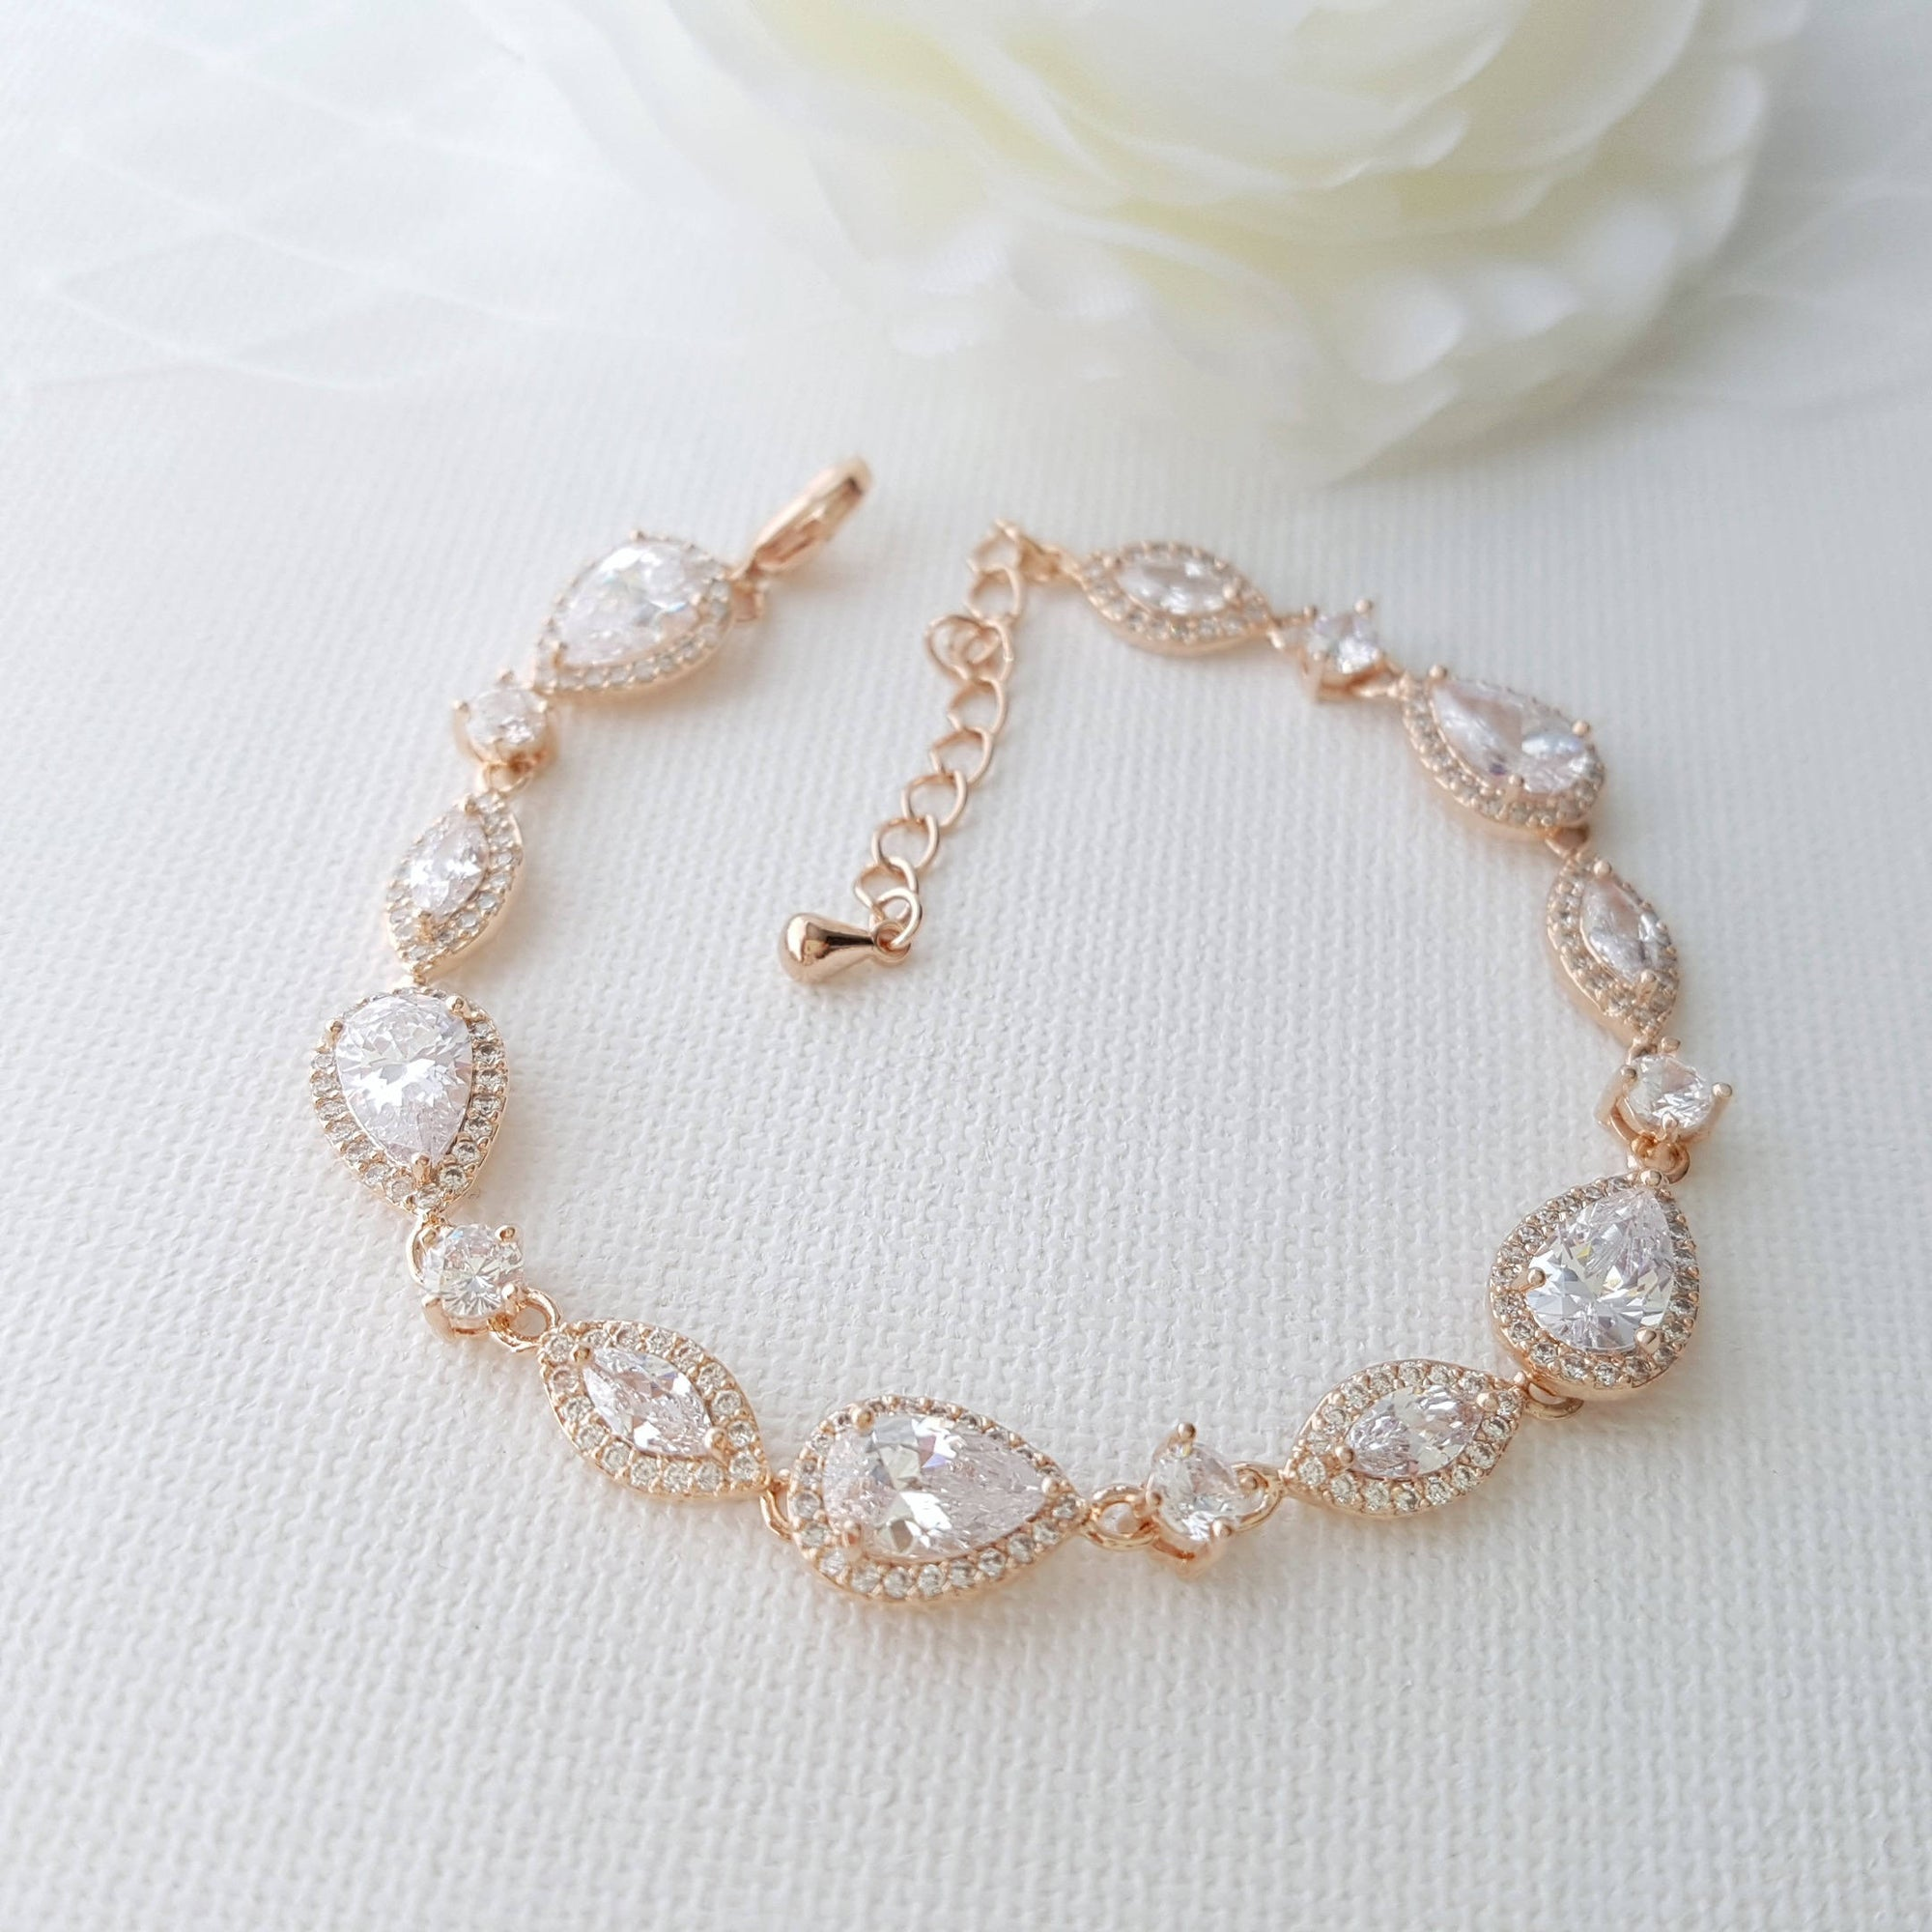 Rose Gold Wedding Bracelet, Crystal Bridal Bracelet, Wedding Jewelry, Simple Bridal Bracelet, Gold, Bridal Jewelry, Abby Bracelet